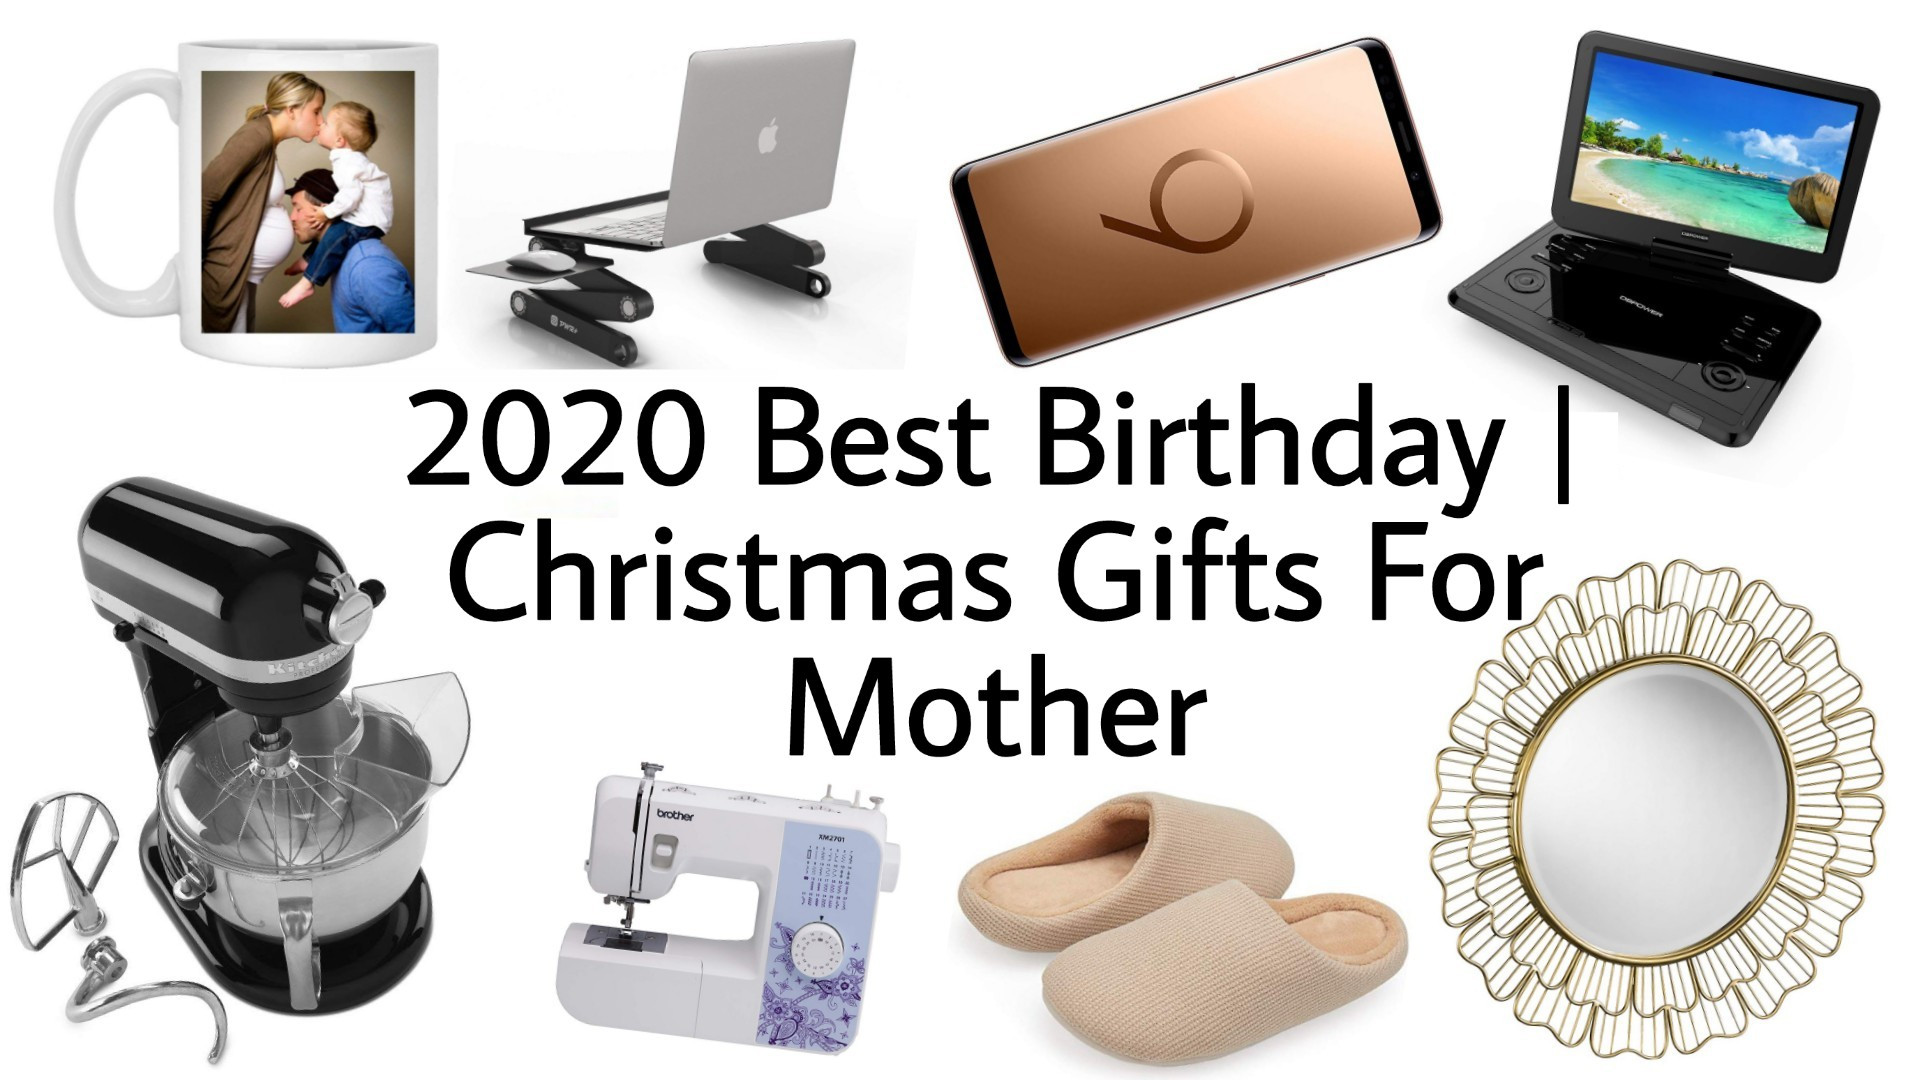 Top Christmas Gift Ideas 2020  2020 Best Christmas Gifts for Mom